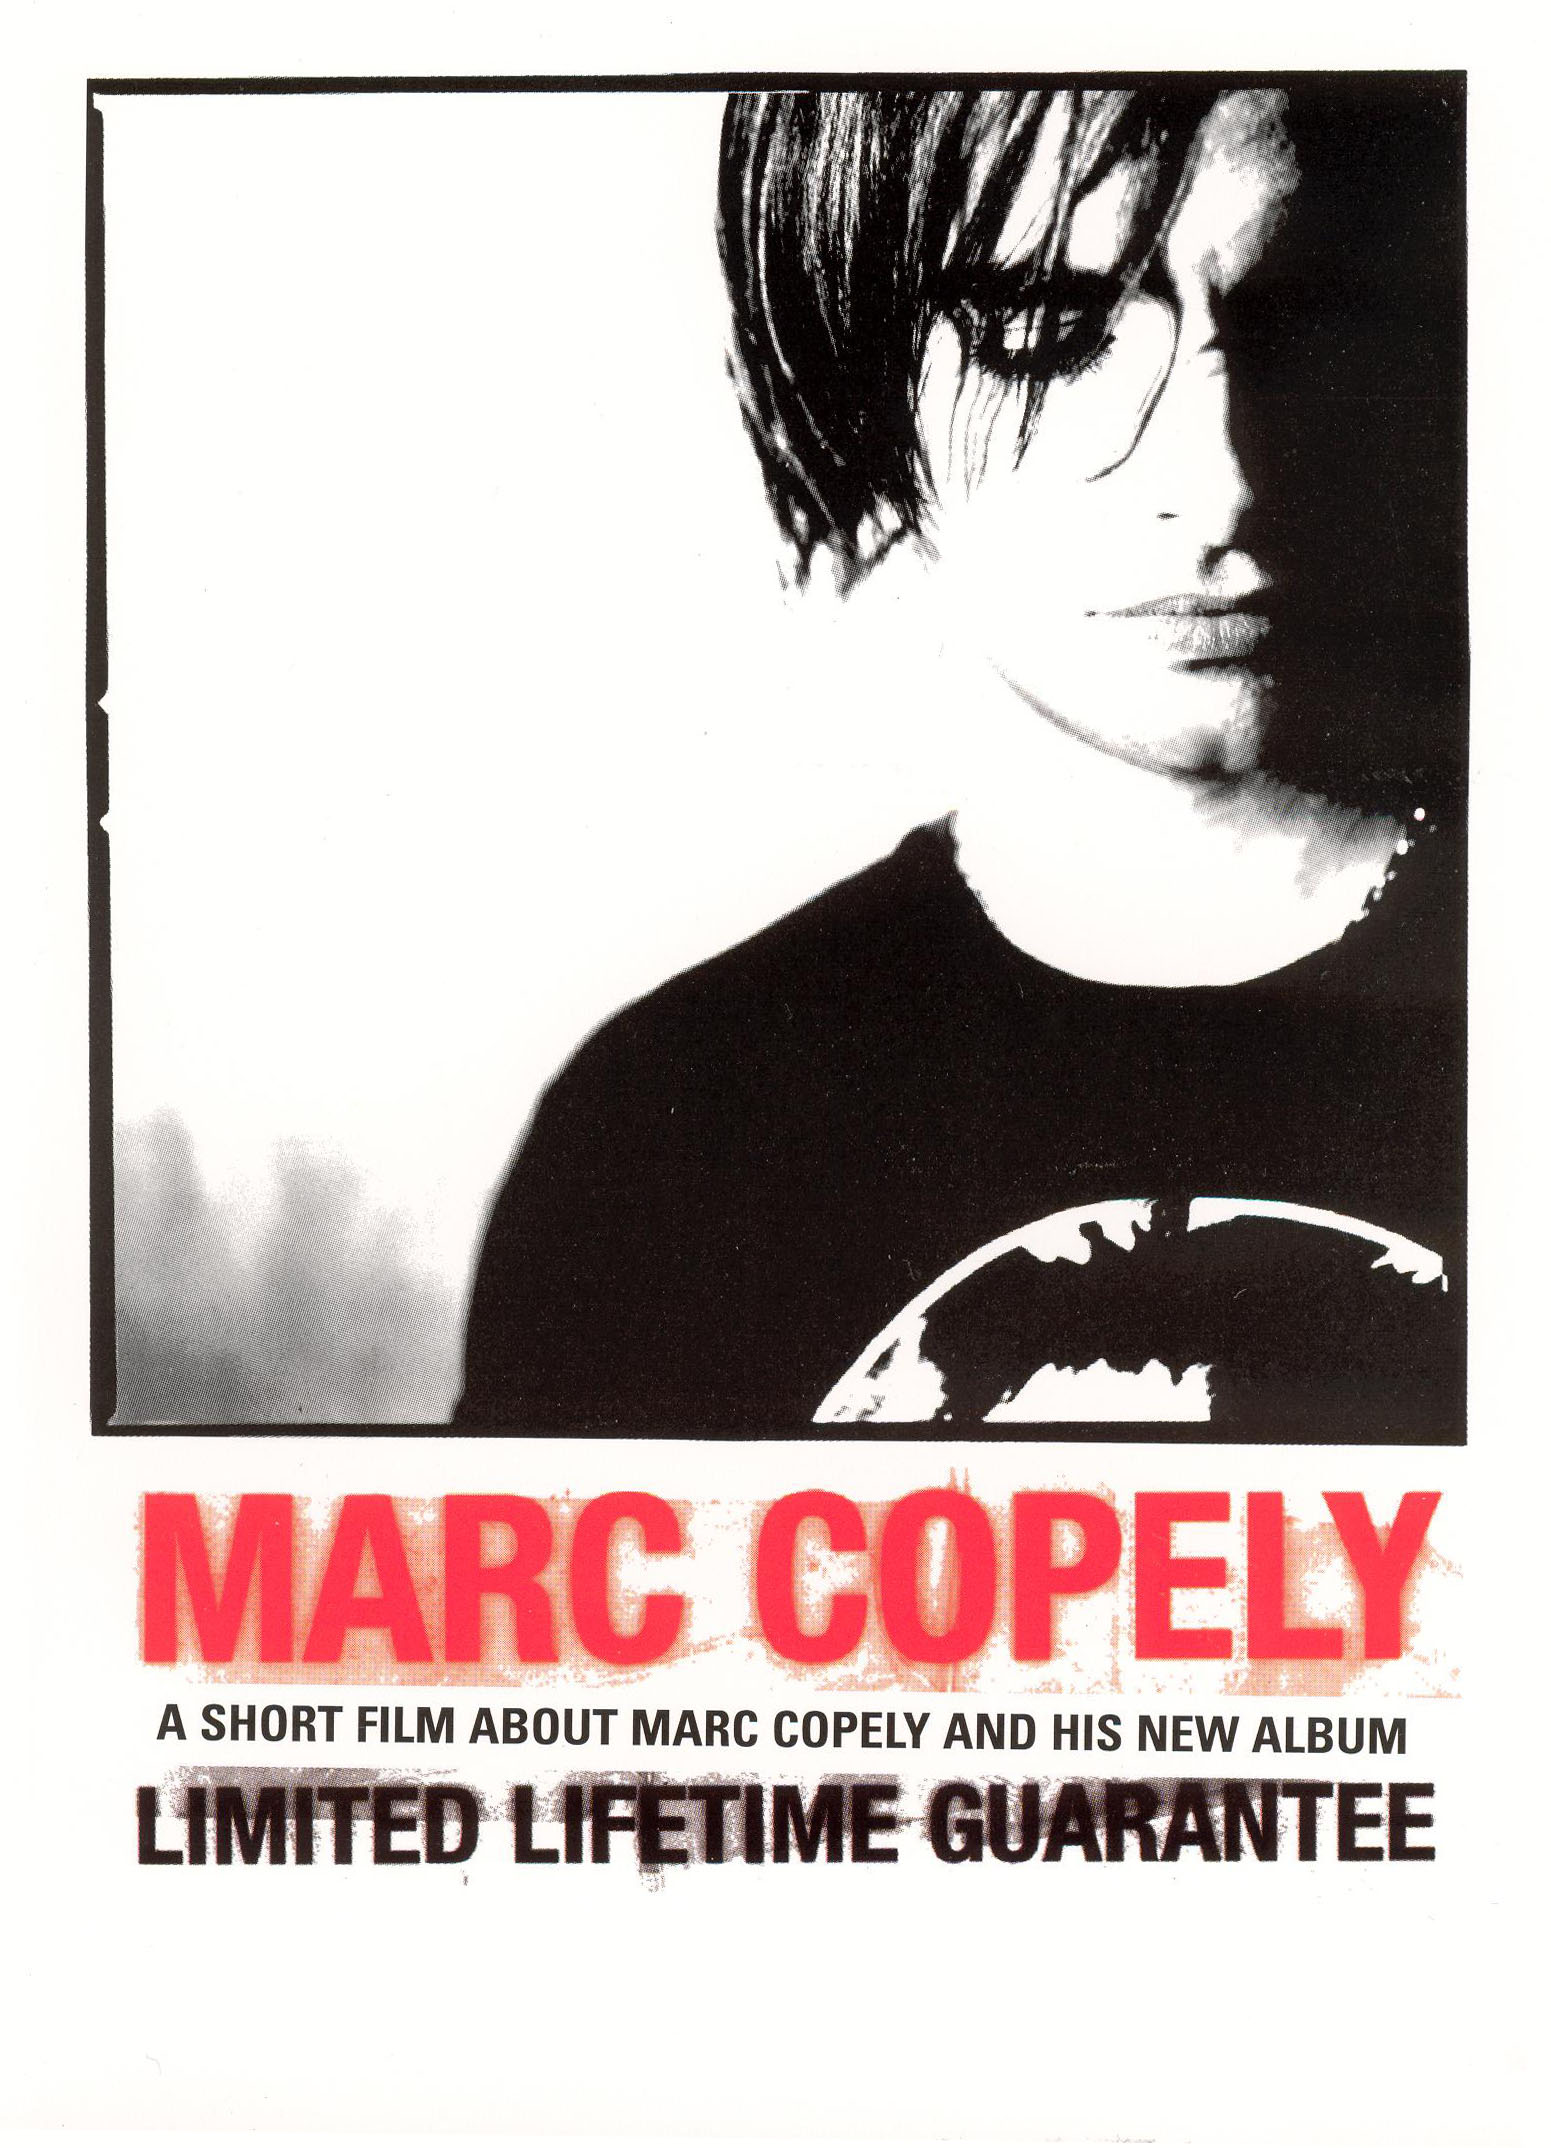 Marc Copely: A Short Film About Marc Copely and His New Album Limited Lifetime Guarantee